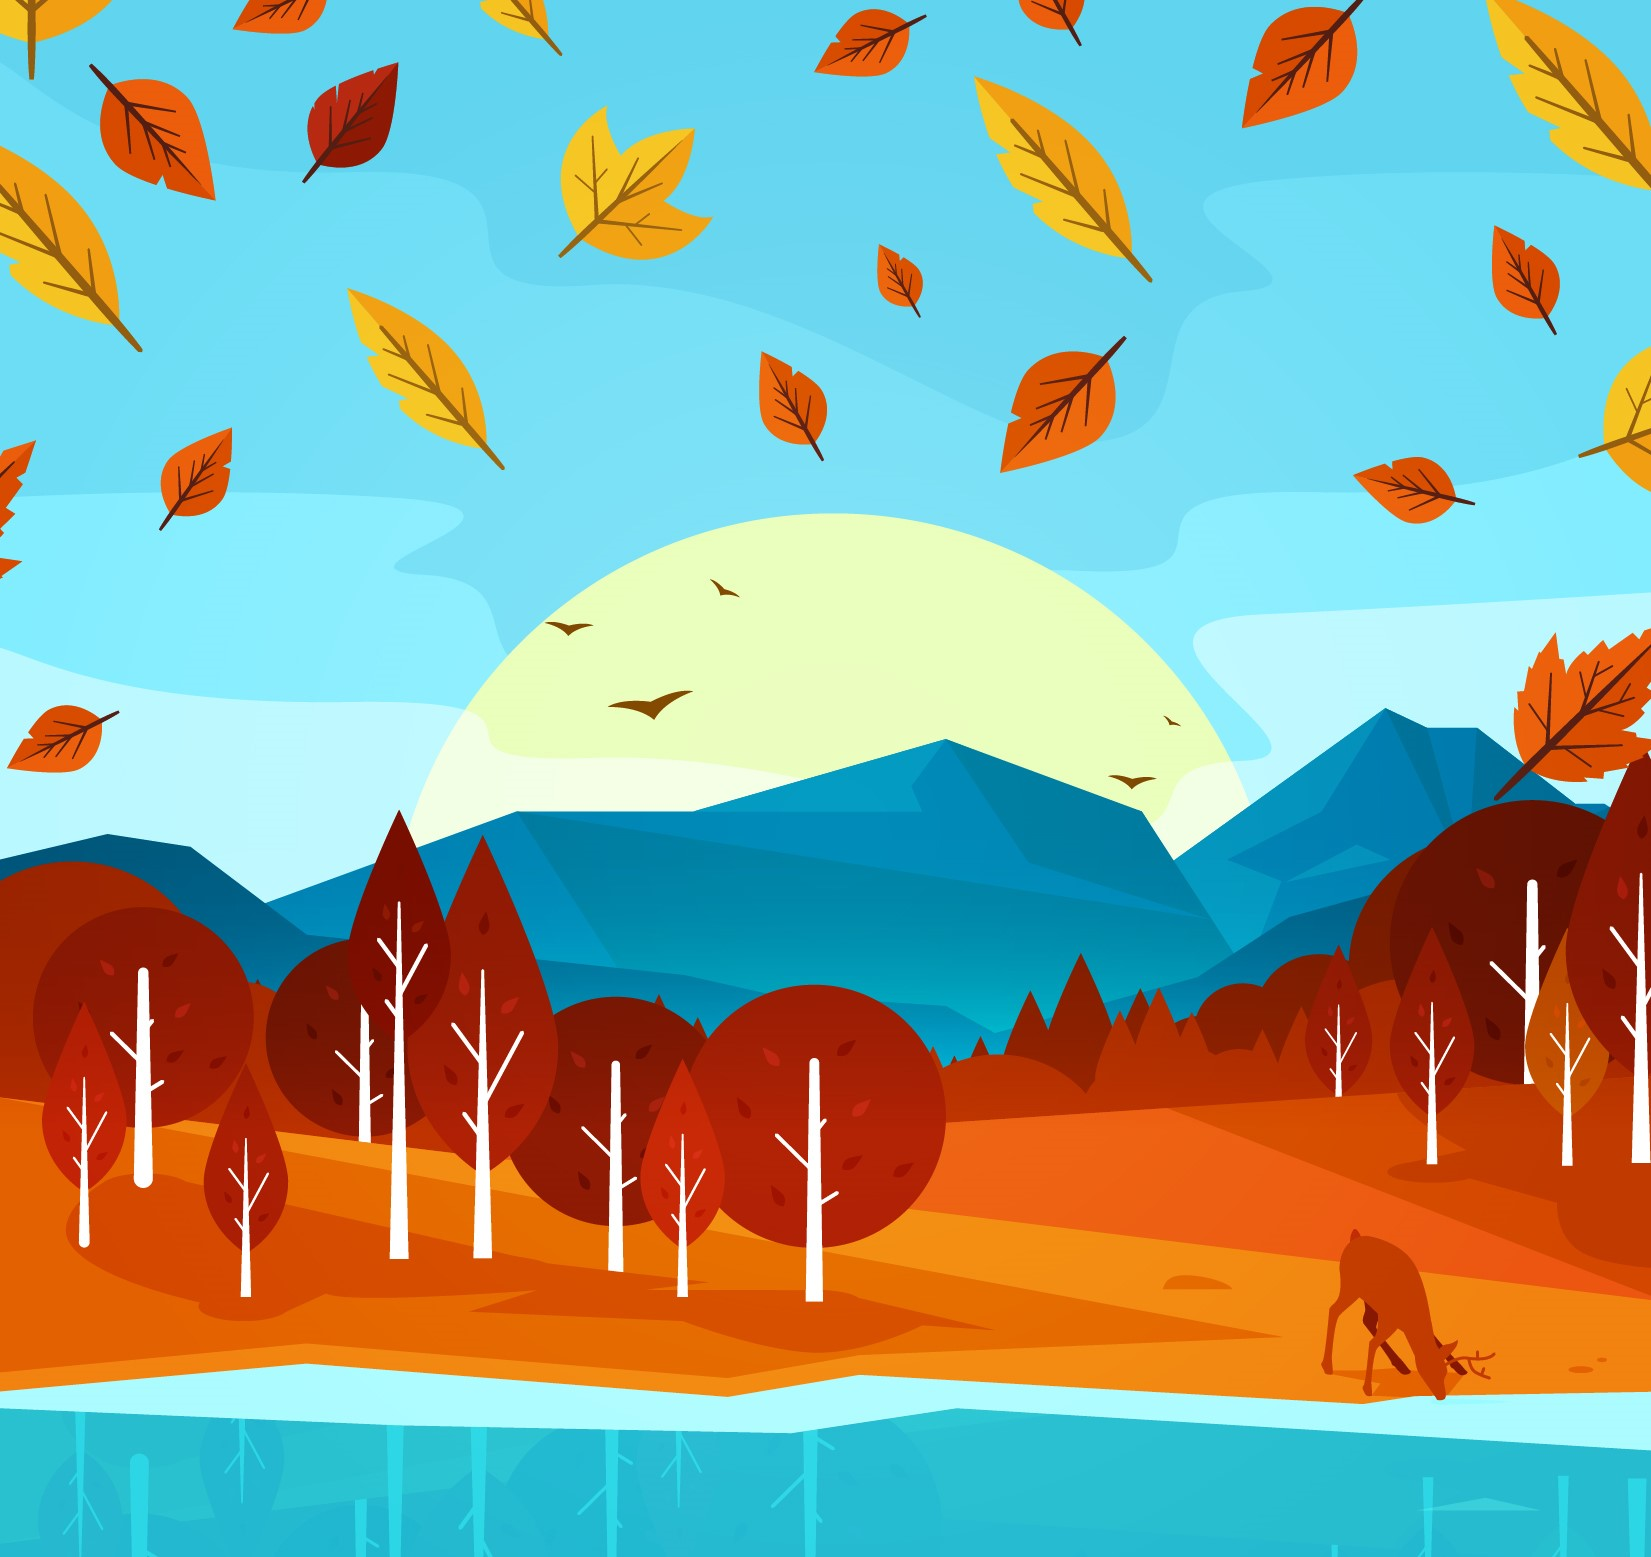 Abstract fall scene with sun setting over mountains